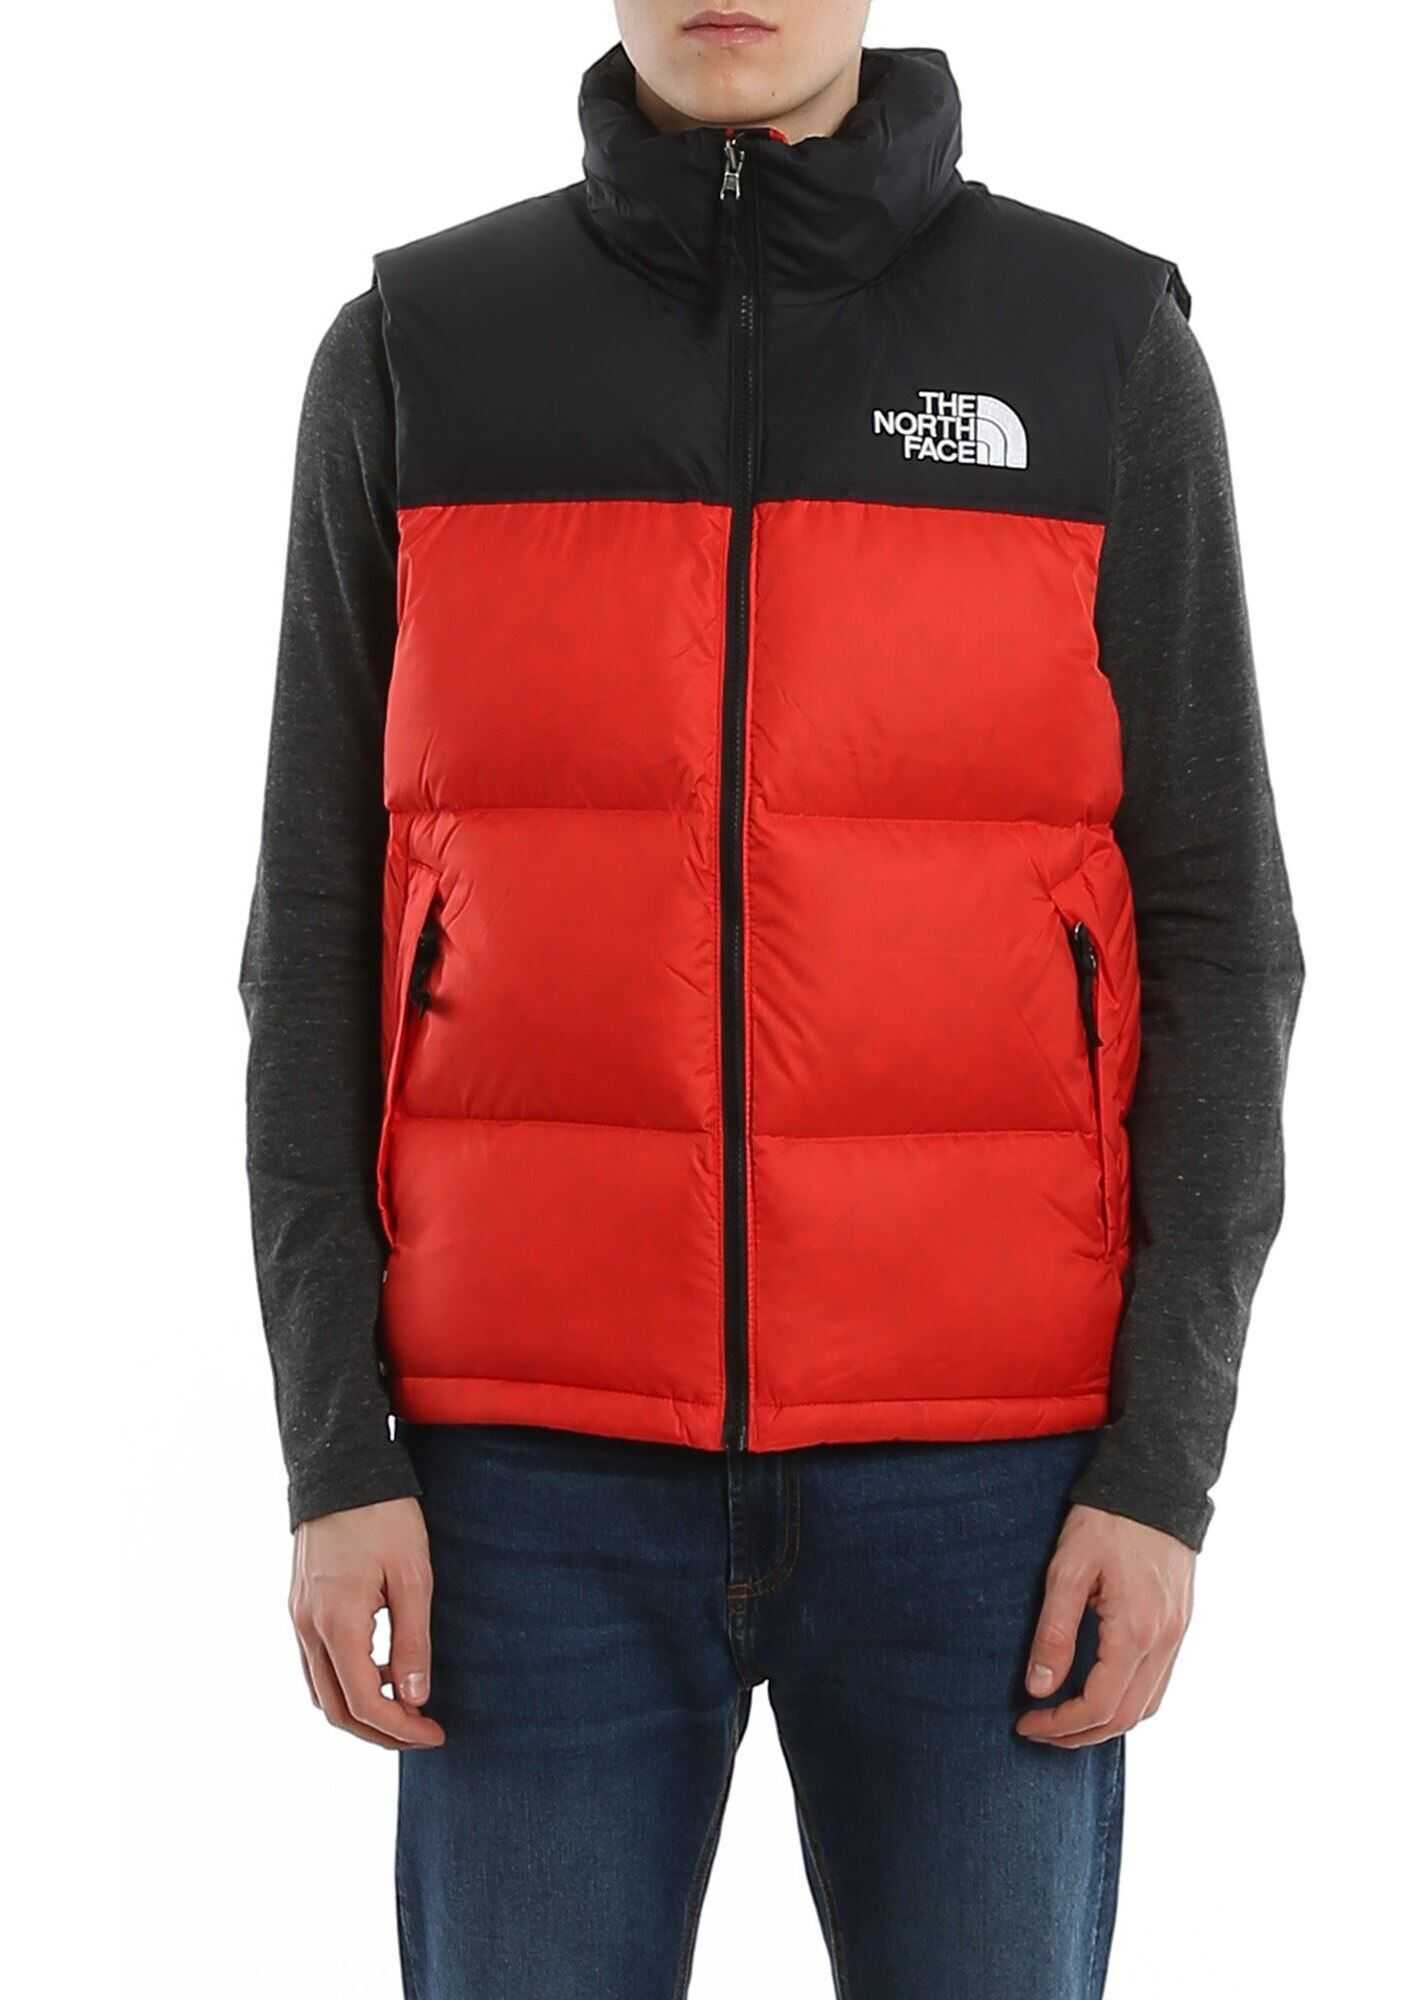 The North Face Two-Tone Padded Vest Red